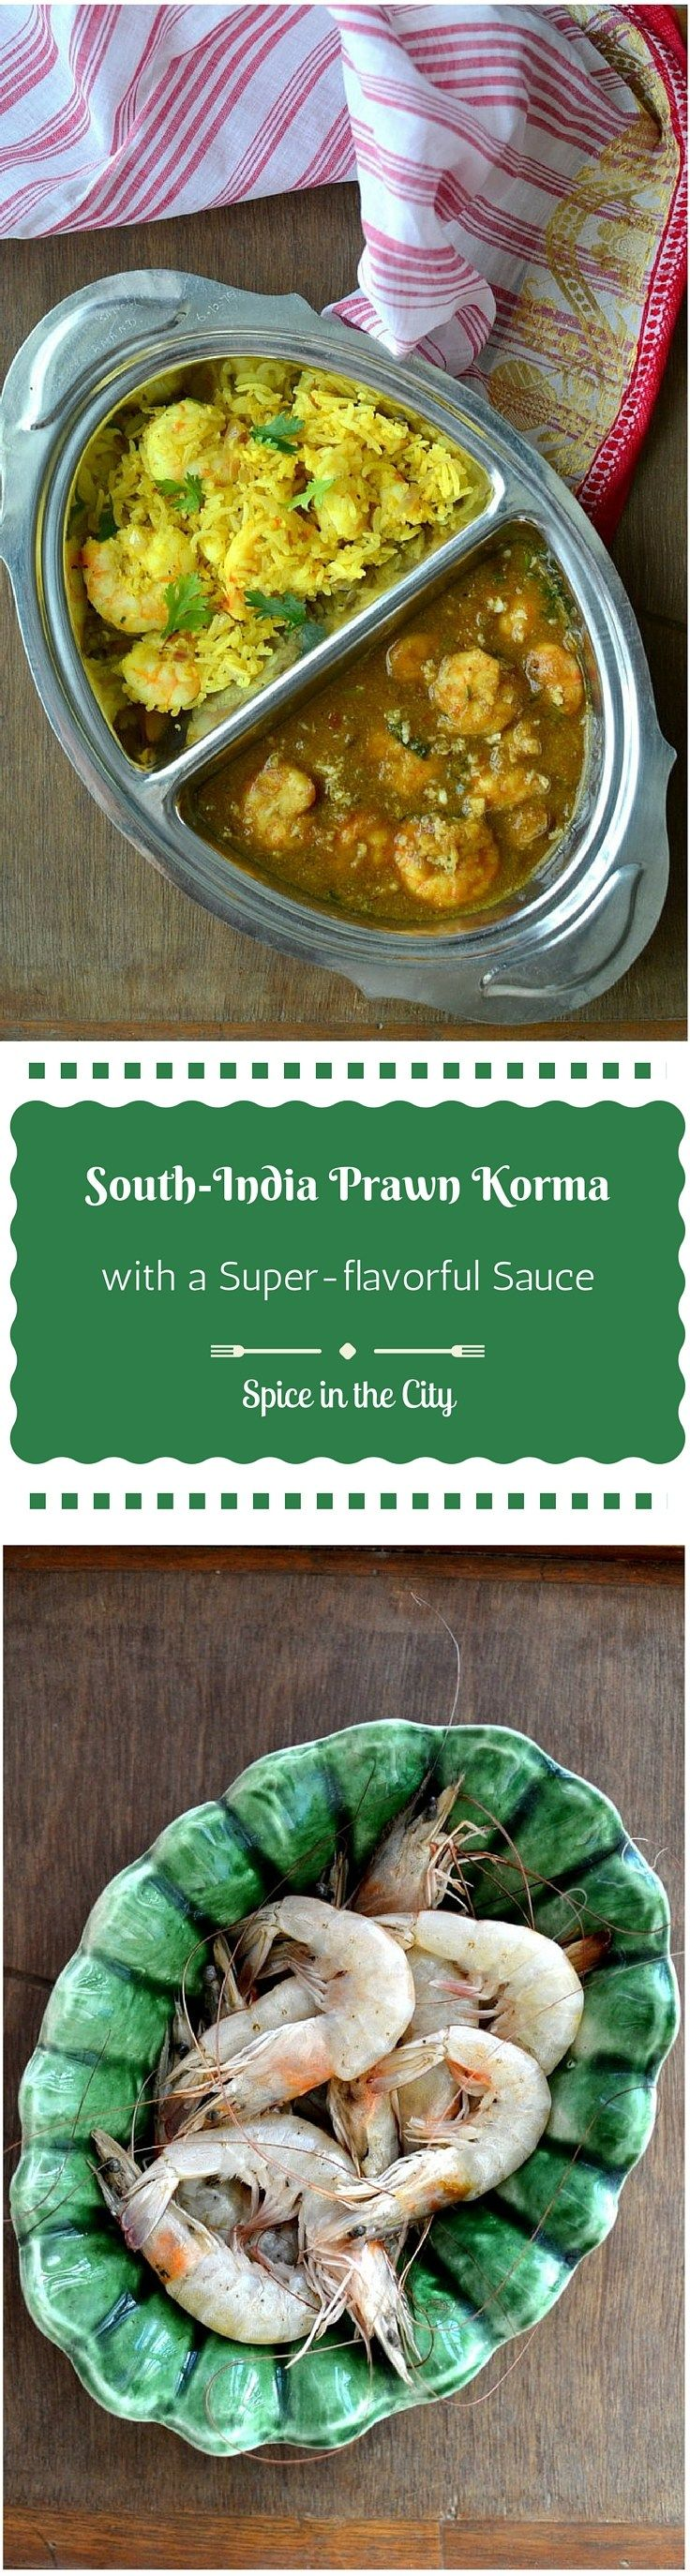 South Indian Prawn Korma: Jumbo prawns cooked in an Exotic super-flavorful South-Indian Sauce! | Spice in the City